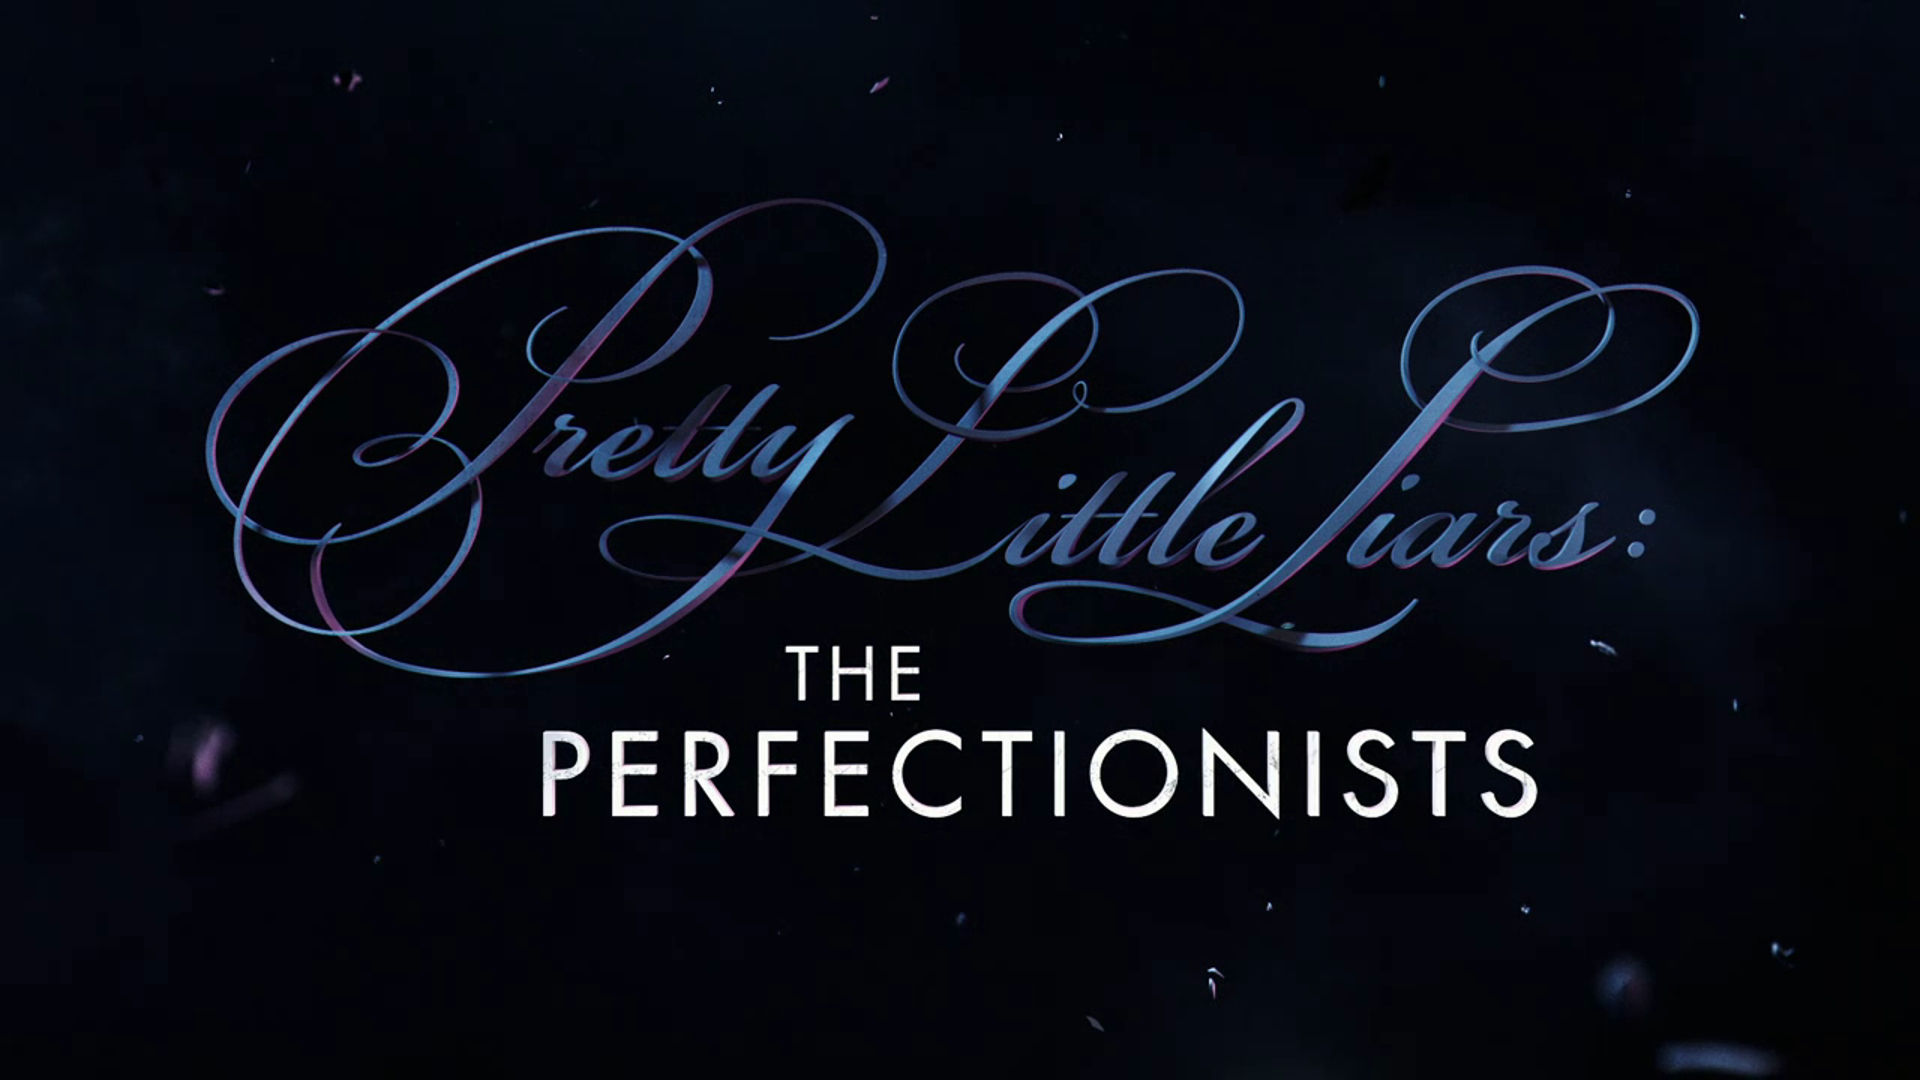 Watch Out   Watch Pretty Little Liars The Perfectionists Video 1920x1080